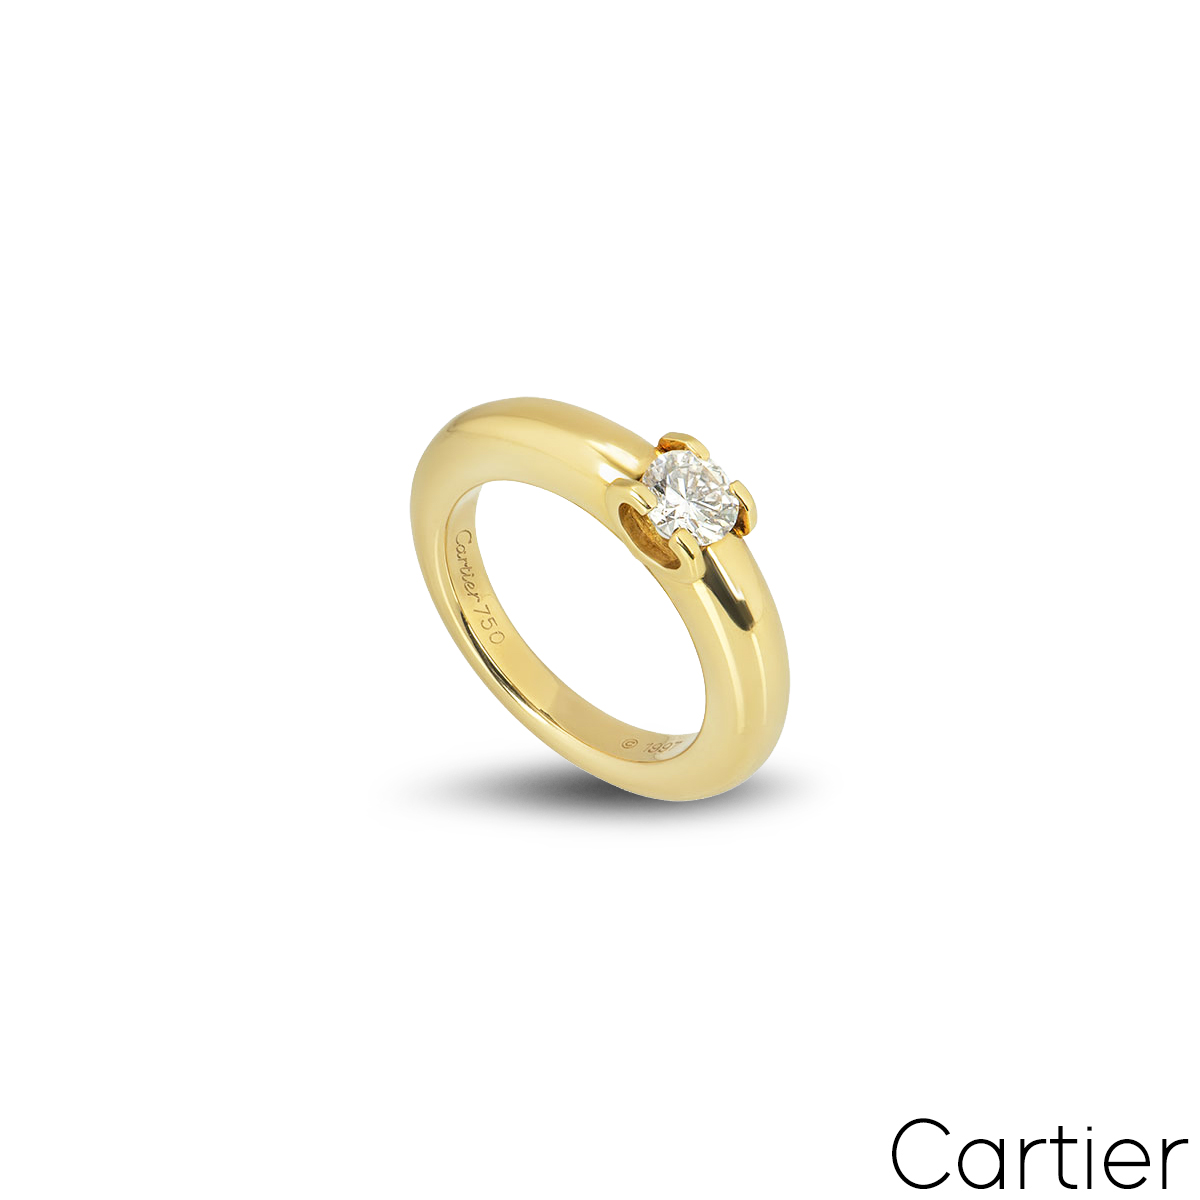 Cartier Yellow Gold Diamond Ring 0.40ct G/VS1